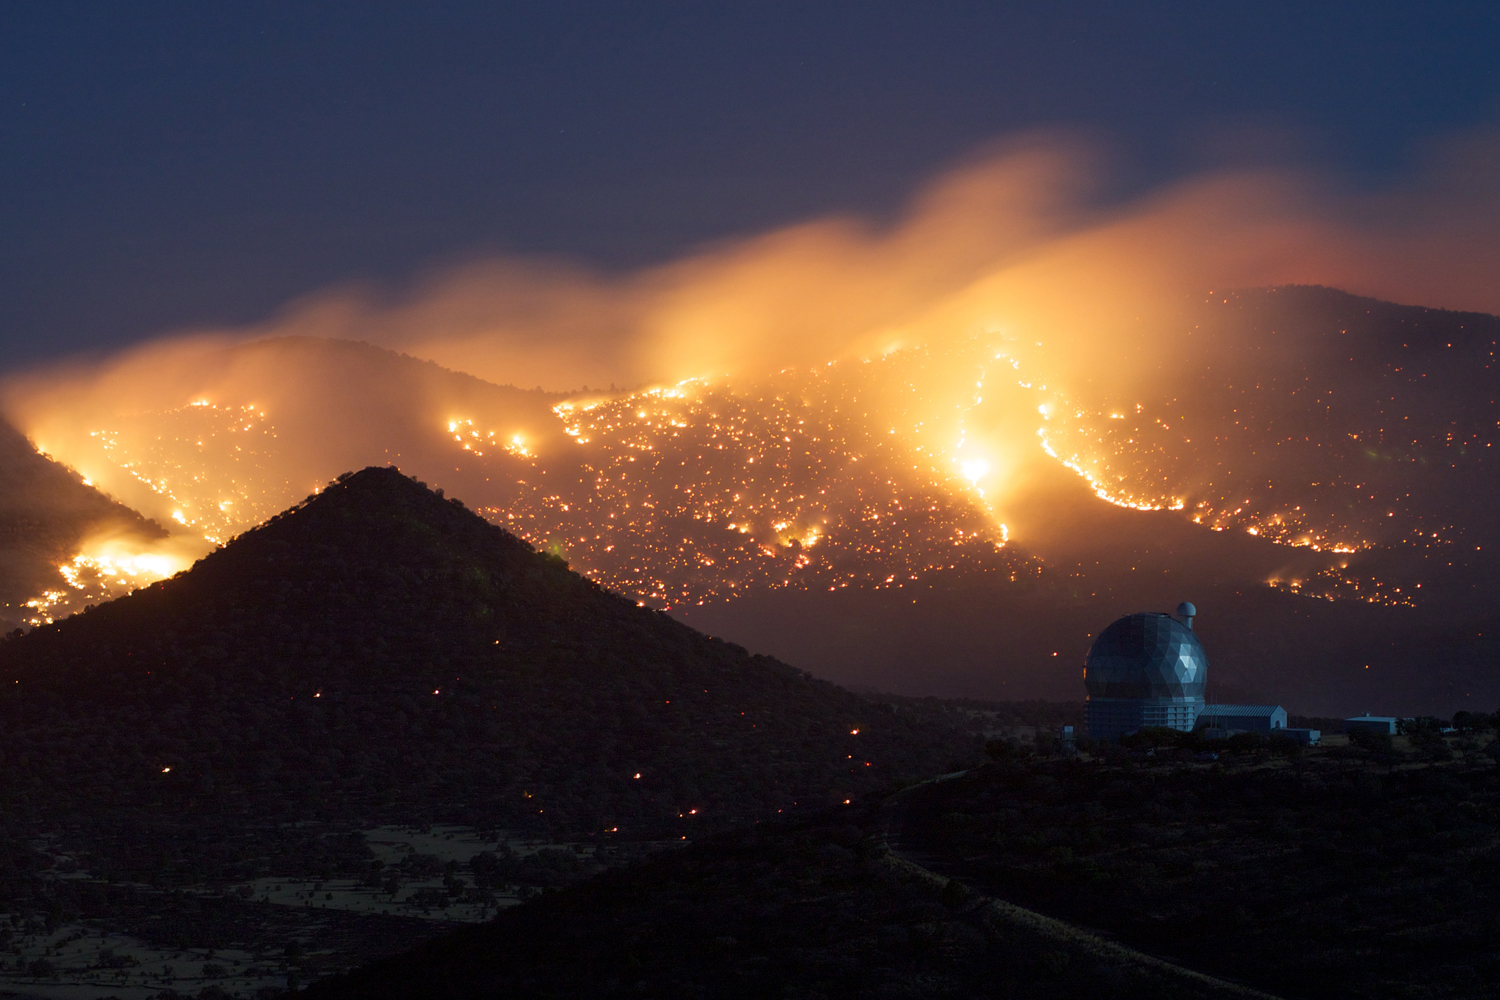 Mcdonald observatory wildfires 110419 02